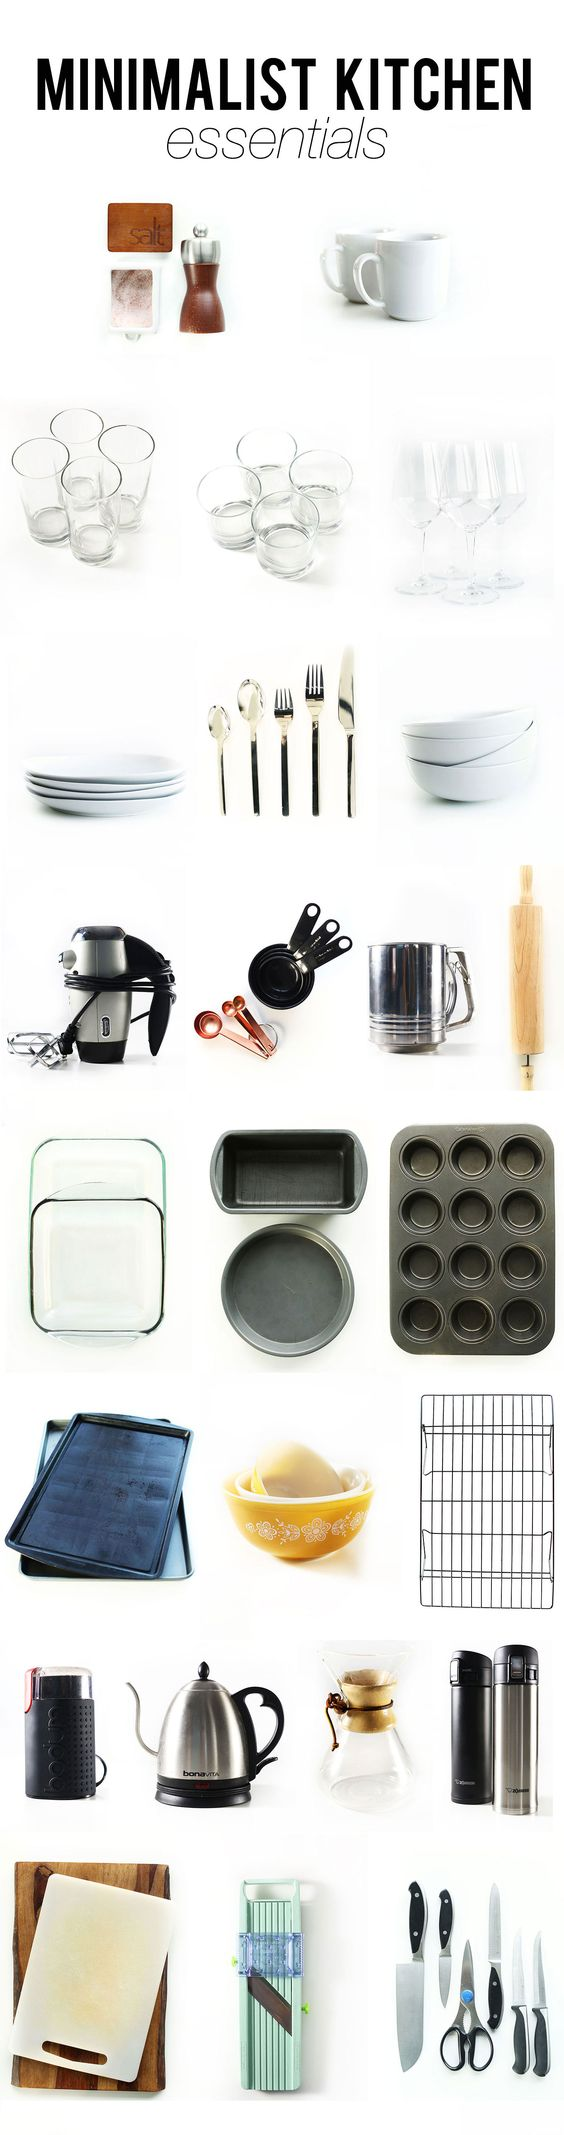 Kitchen Essentials, Minimalist Kitchen And Kitchens On